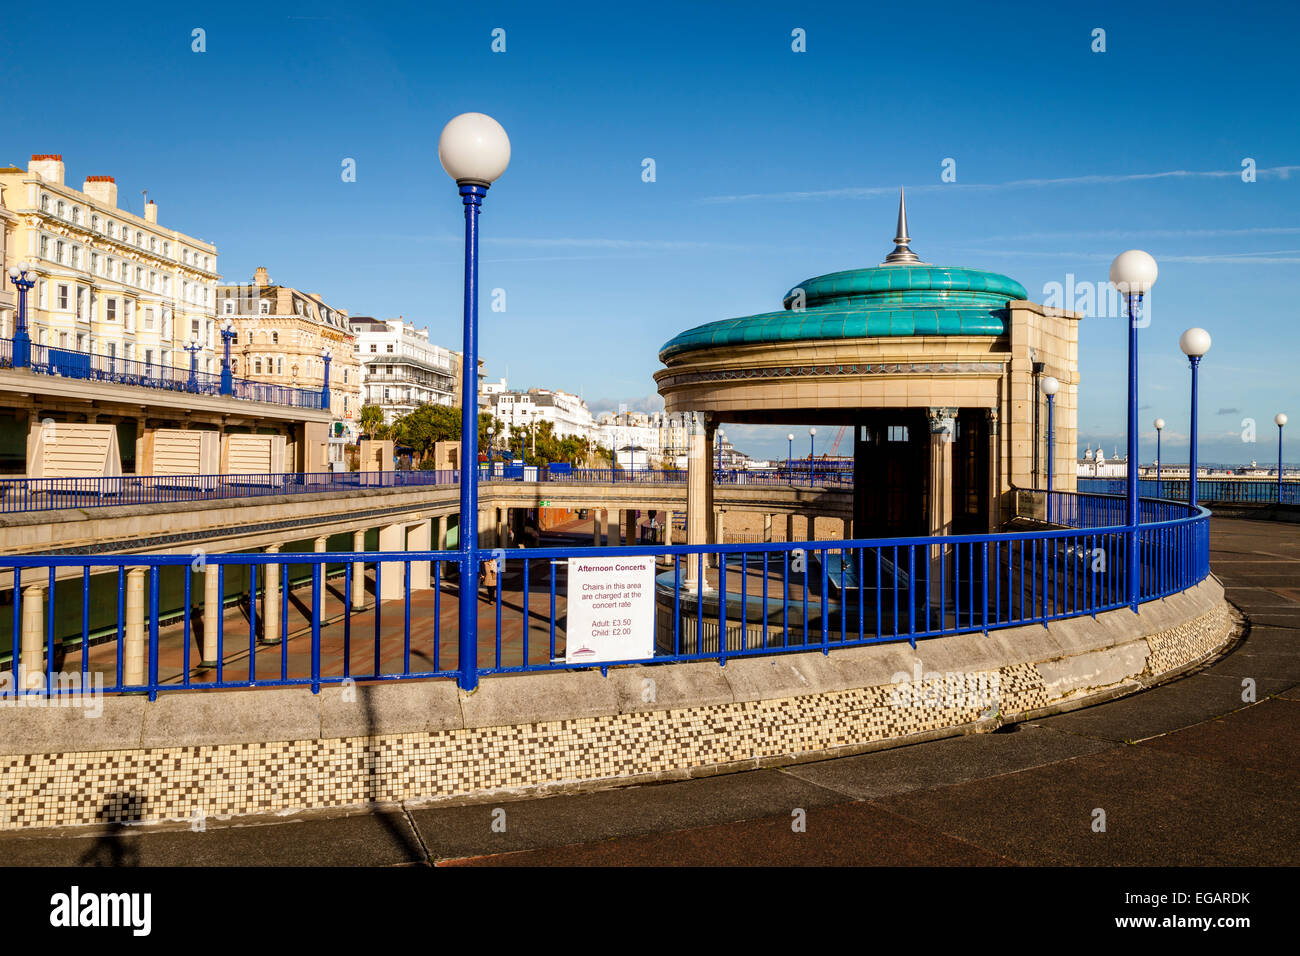 The Bandstand, Eastbourne, Sussex, England - Stock Image